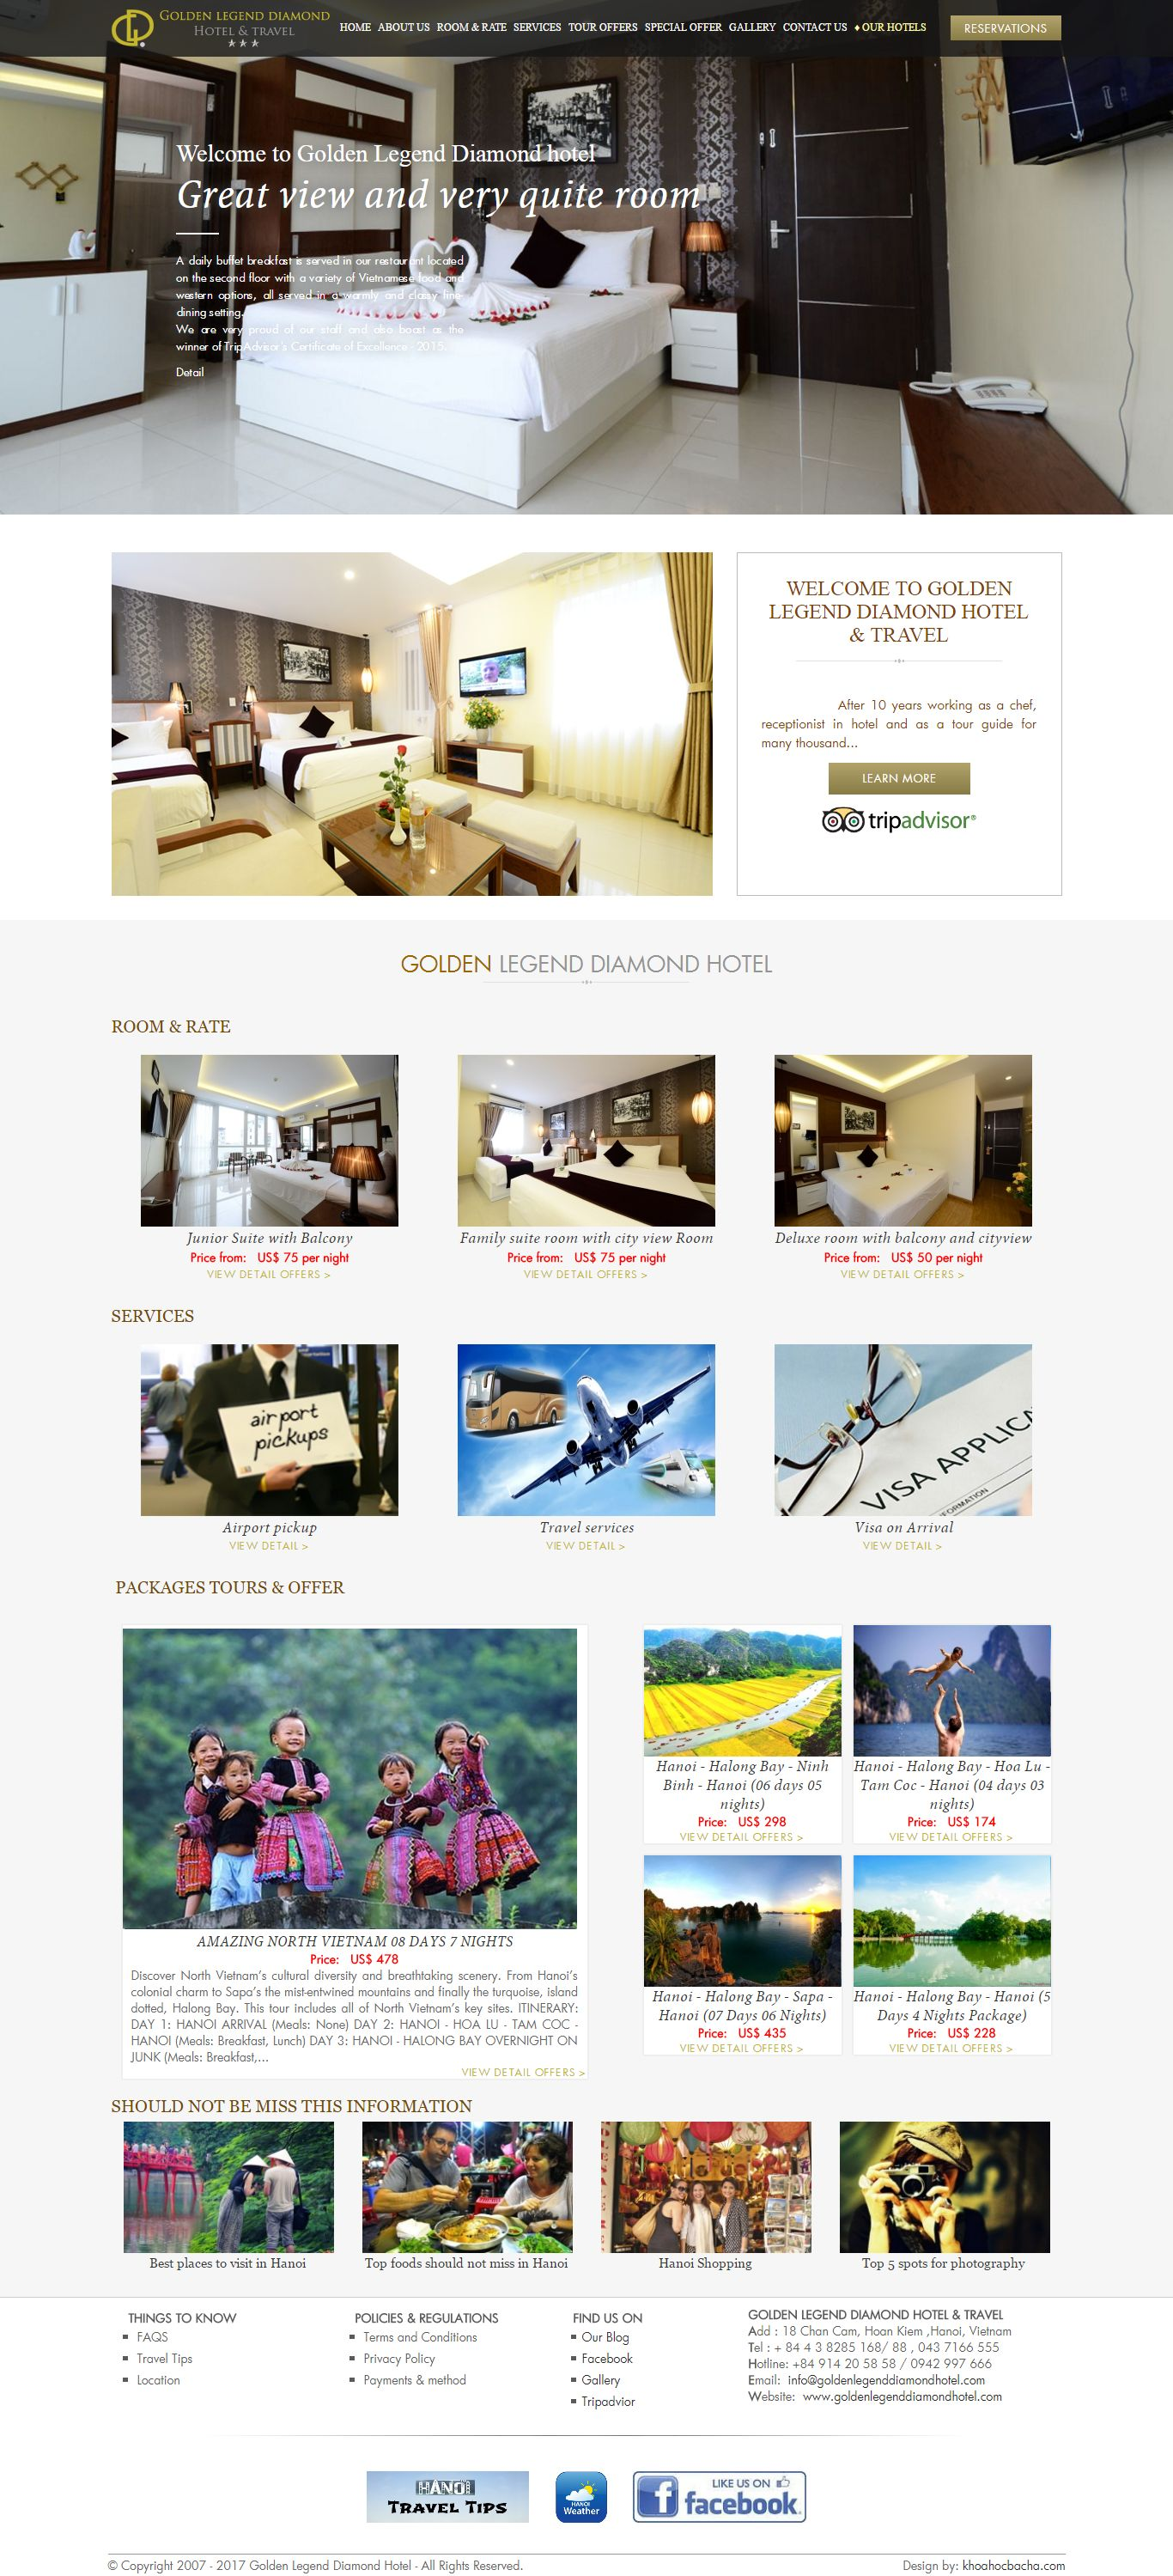 Thiết kế website Golden Legend Diamond Hotel